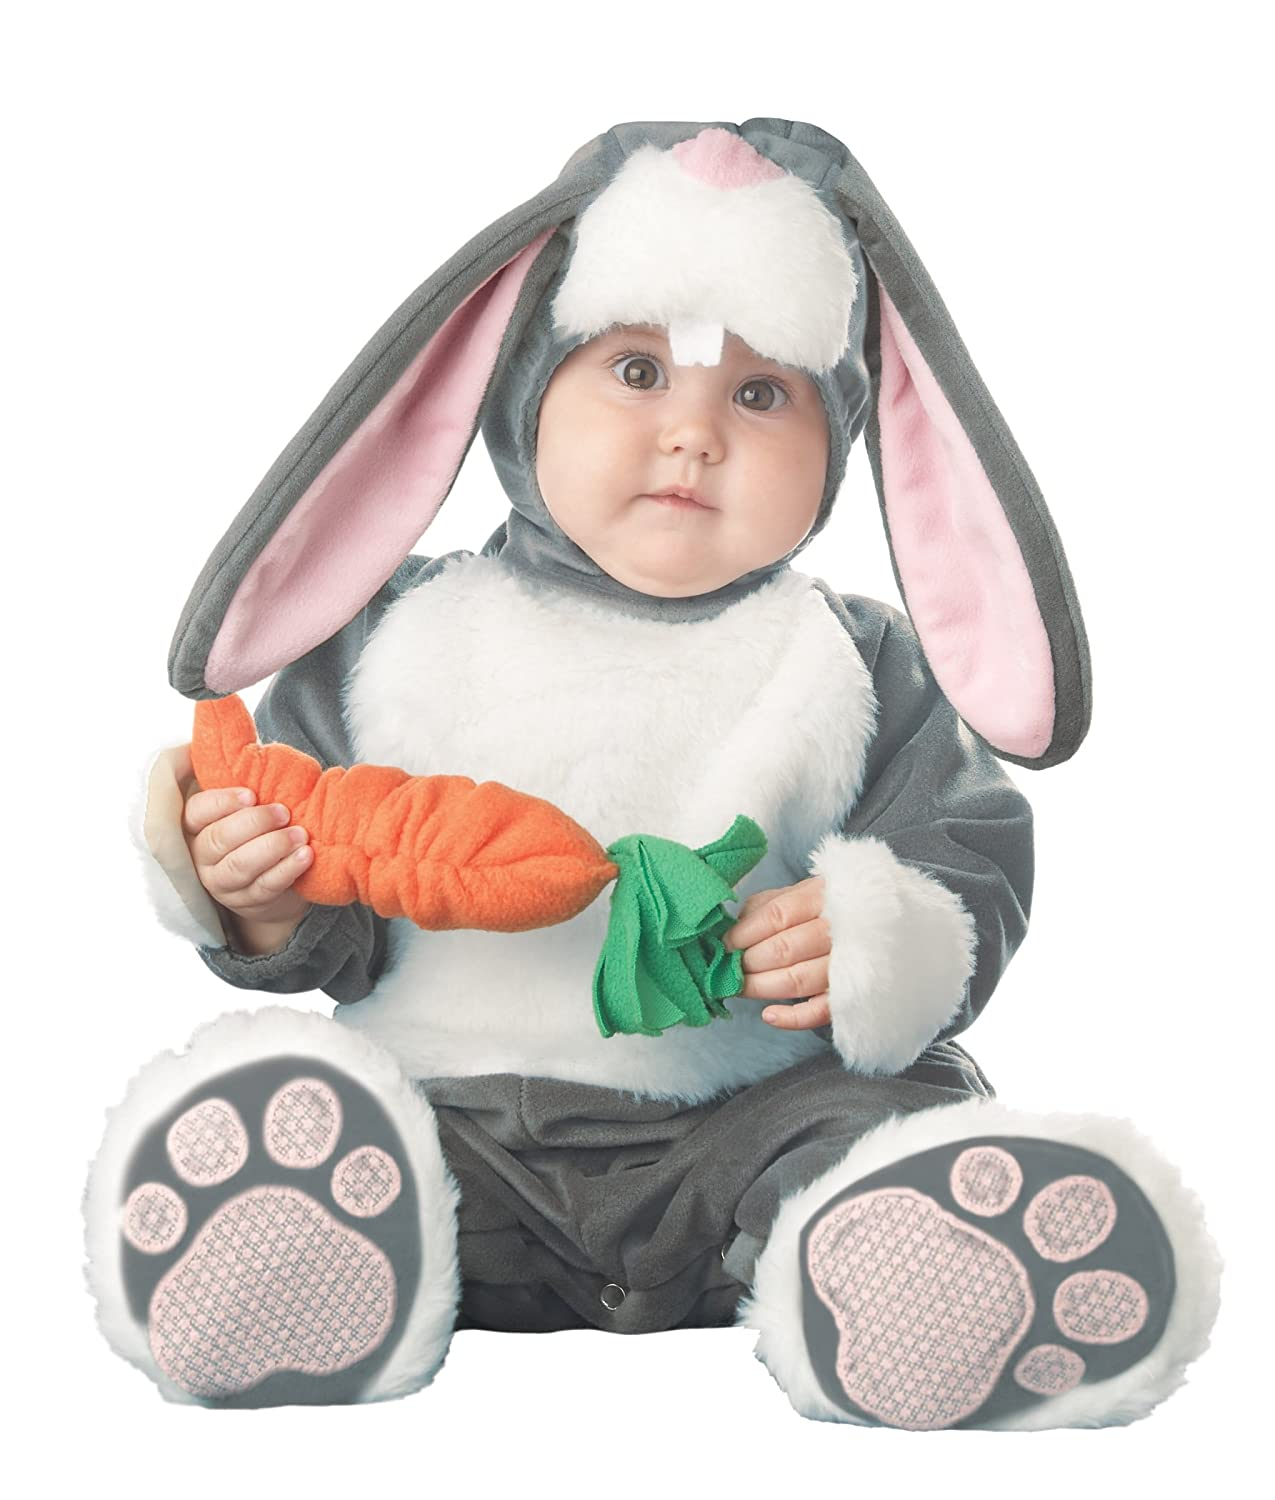 Cute Halloween Costumes for Babies 6 – 9 Months